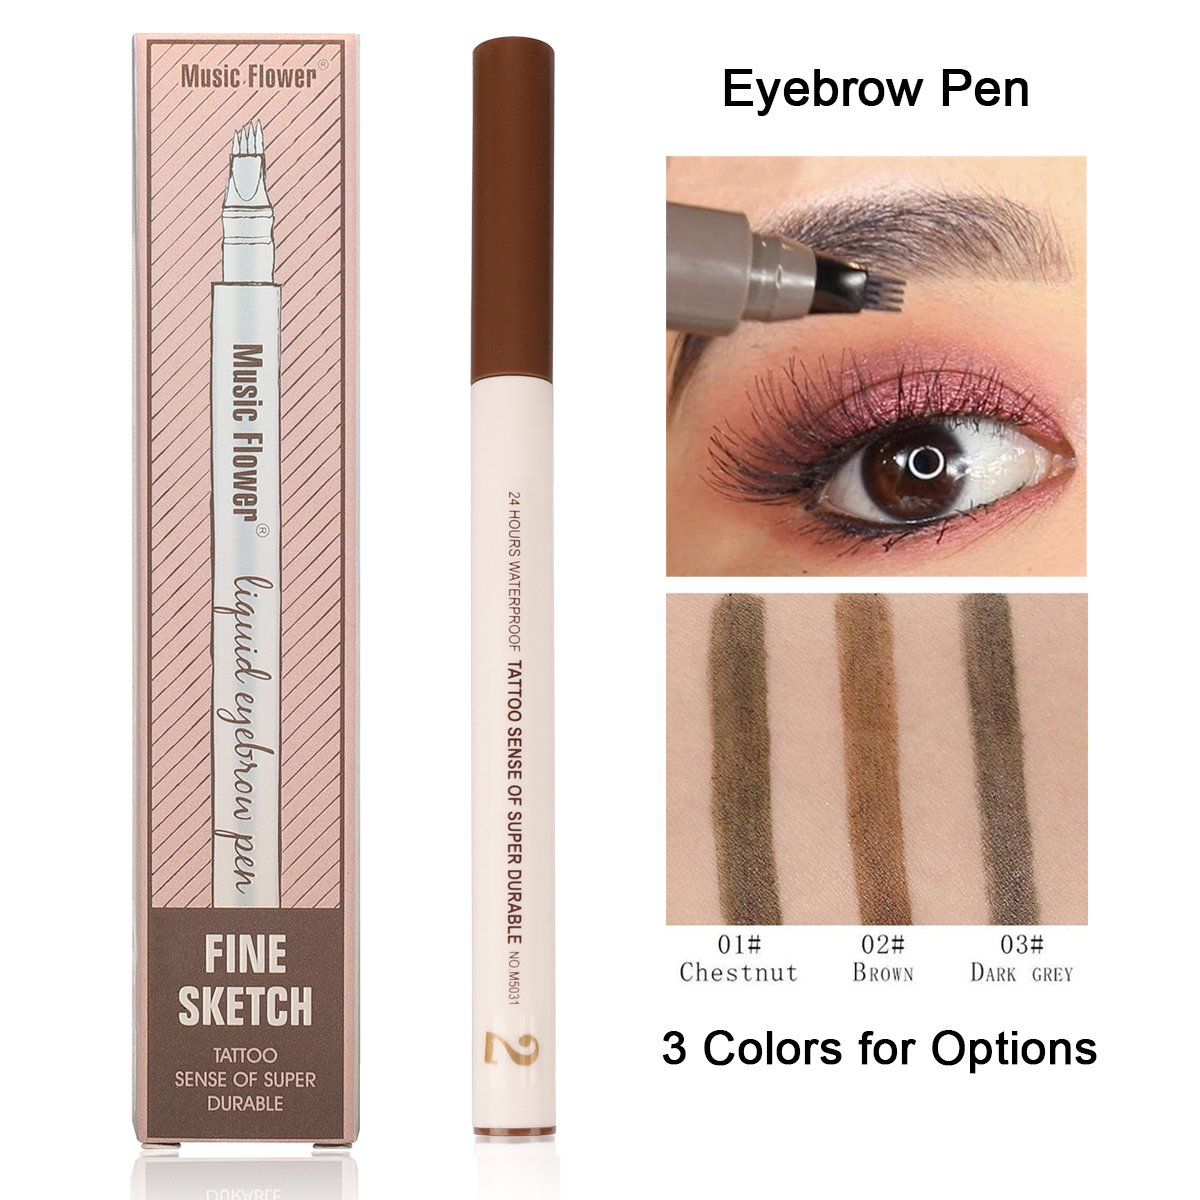 Microblading Eyebrow Pen, Natural Look Sweat-proof Long-lasting Liquid Eyebrow Pen with 4-Tips for Eyes Makeup (02 Brown)